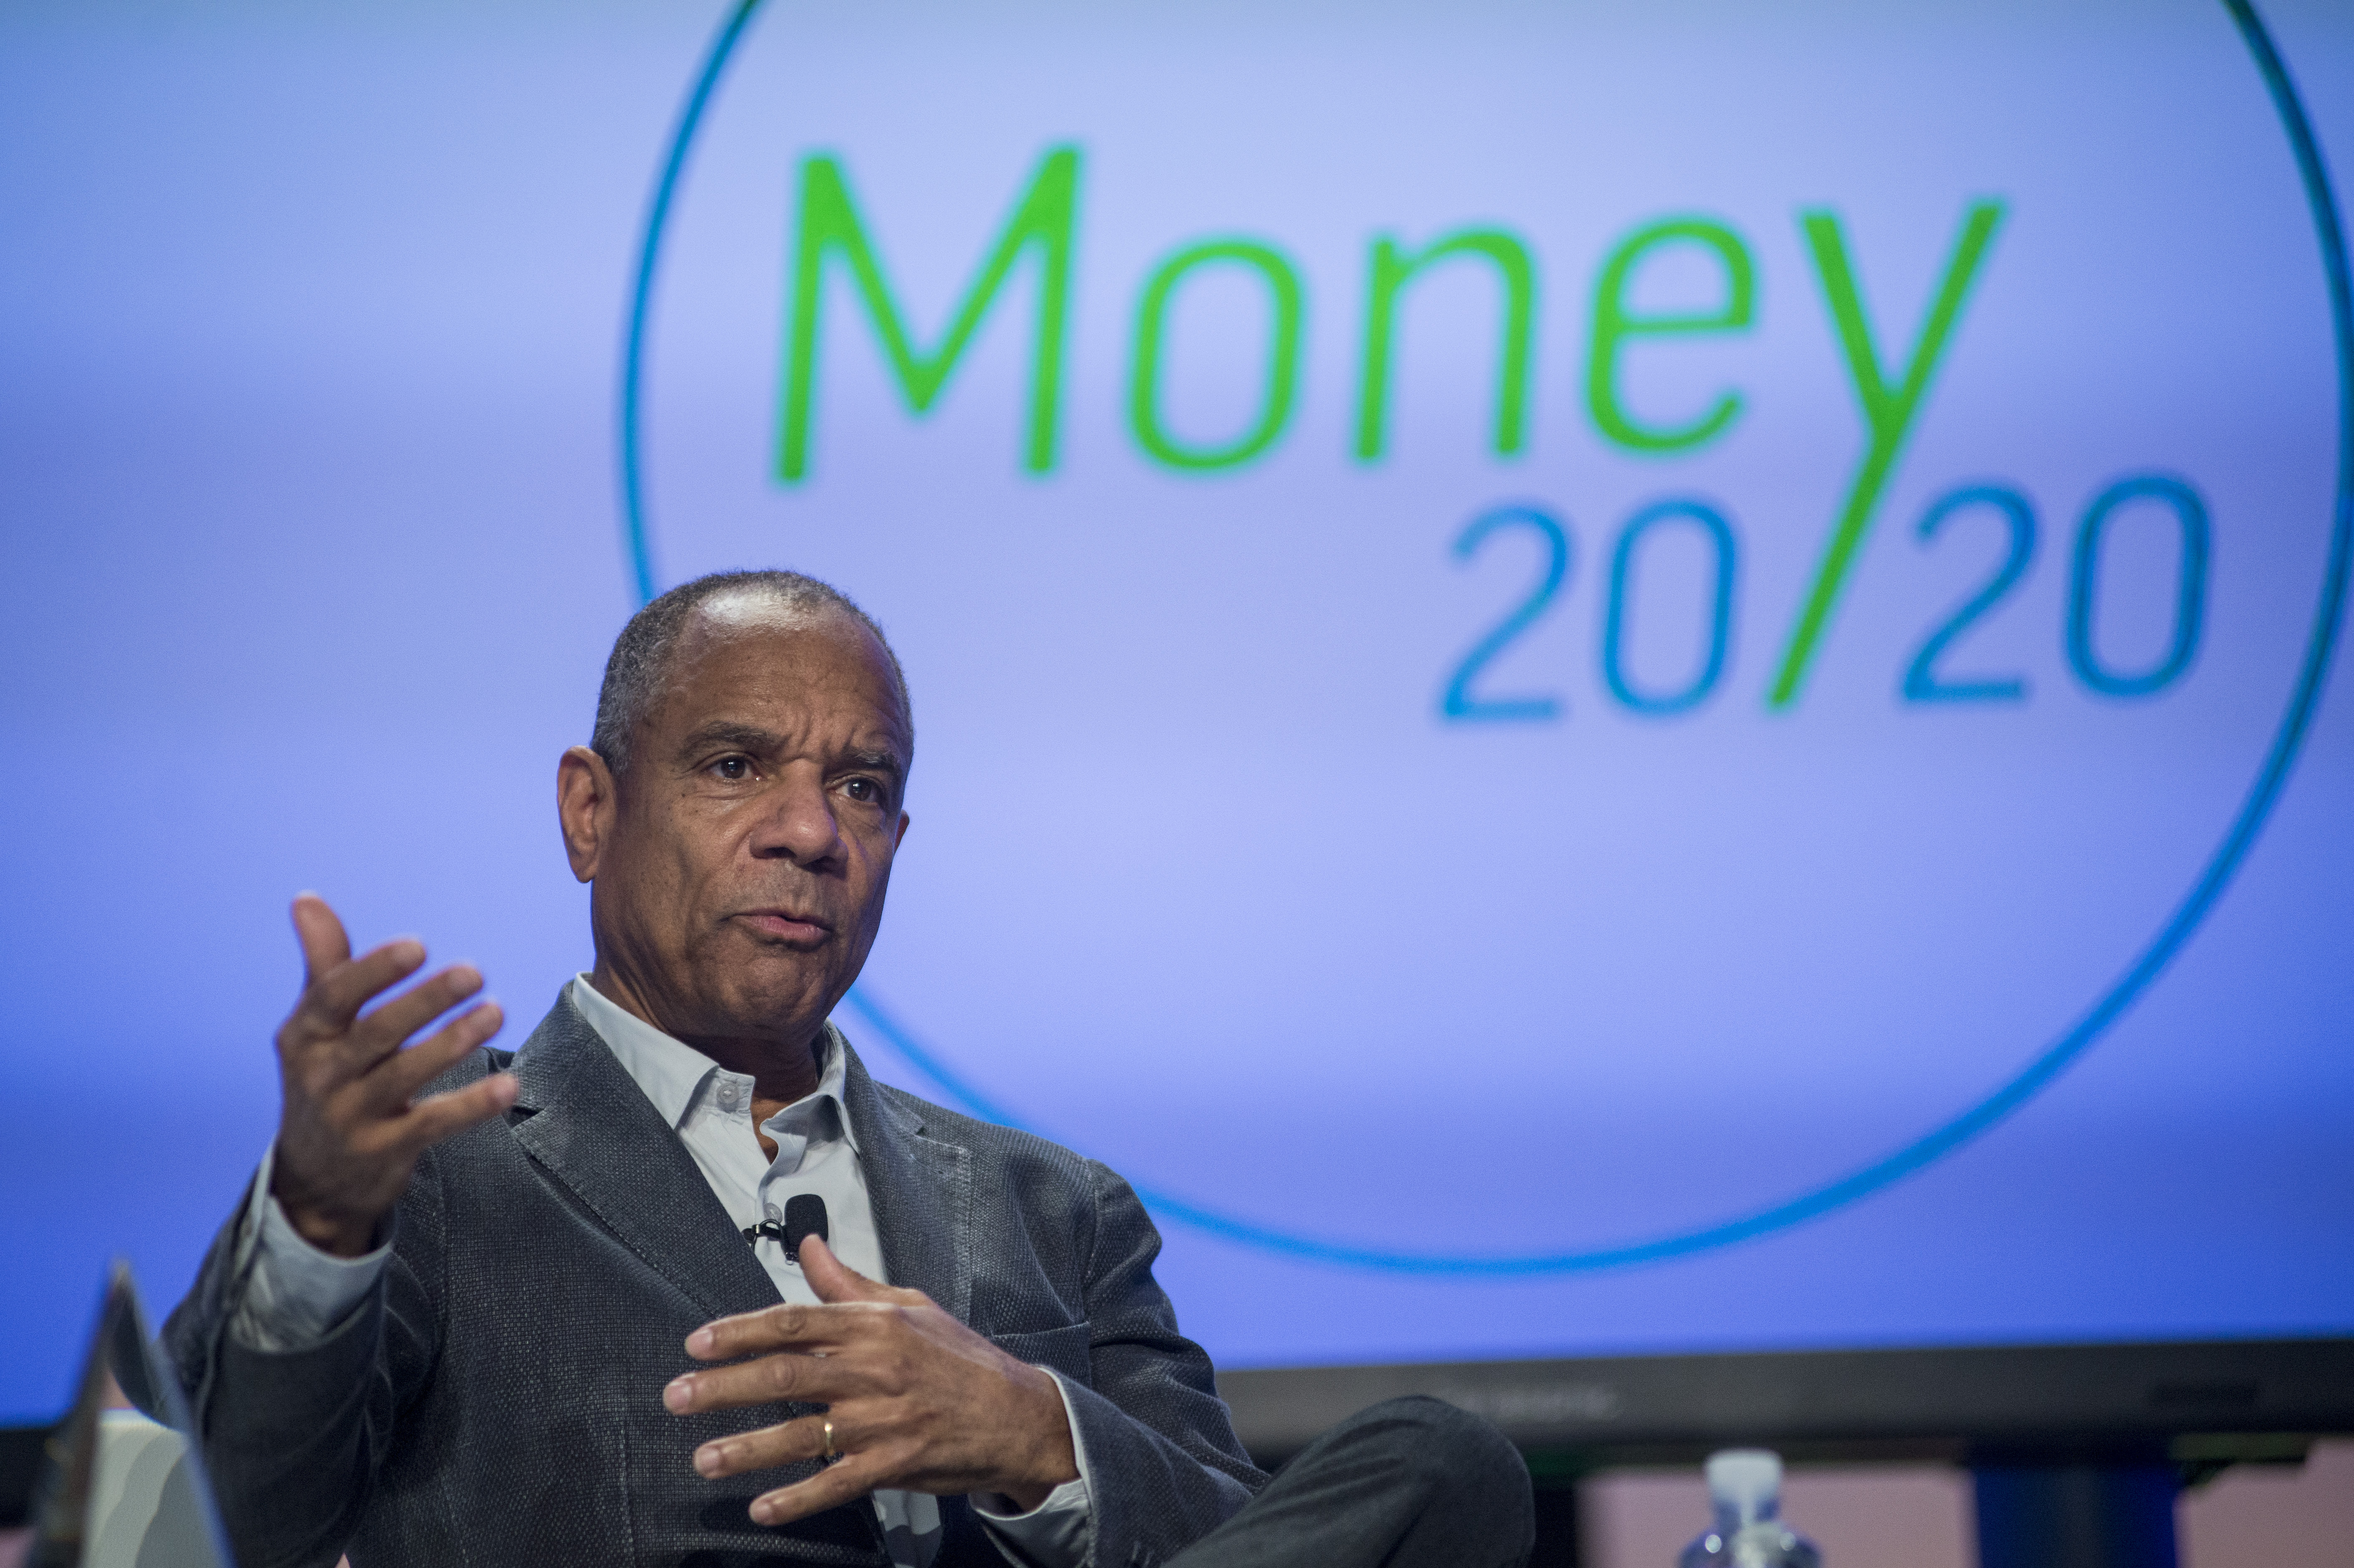 AmEx CEO Chenault To Exit, Succeeded By Vice Chairman Squeri